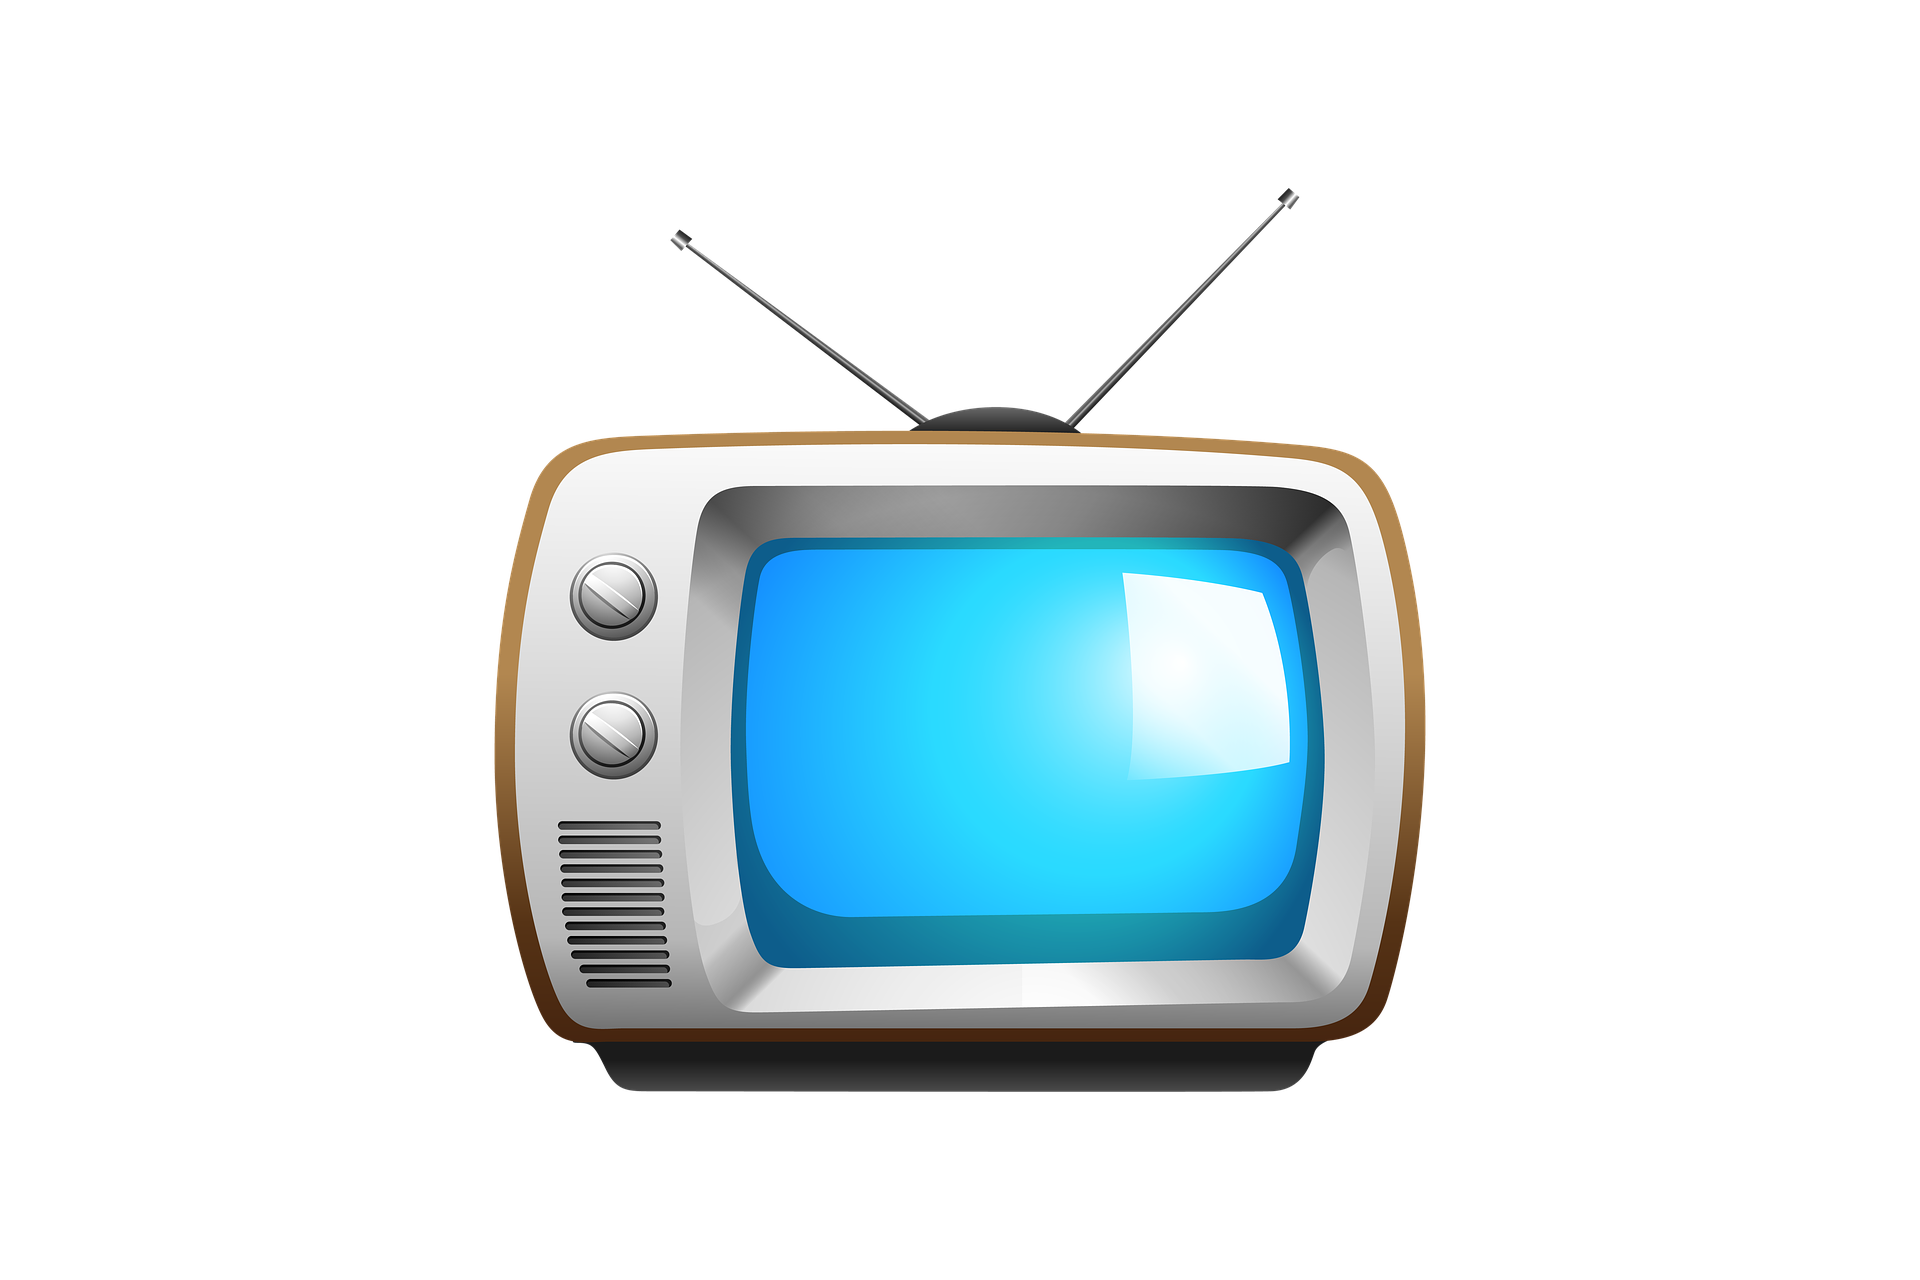 tv-3414704_1920.png